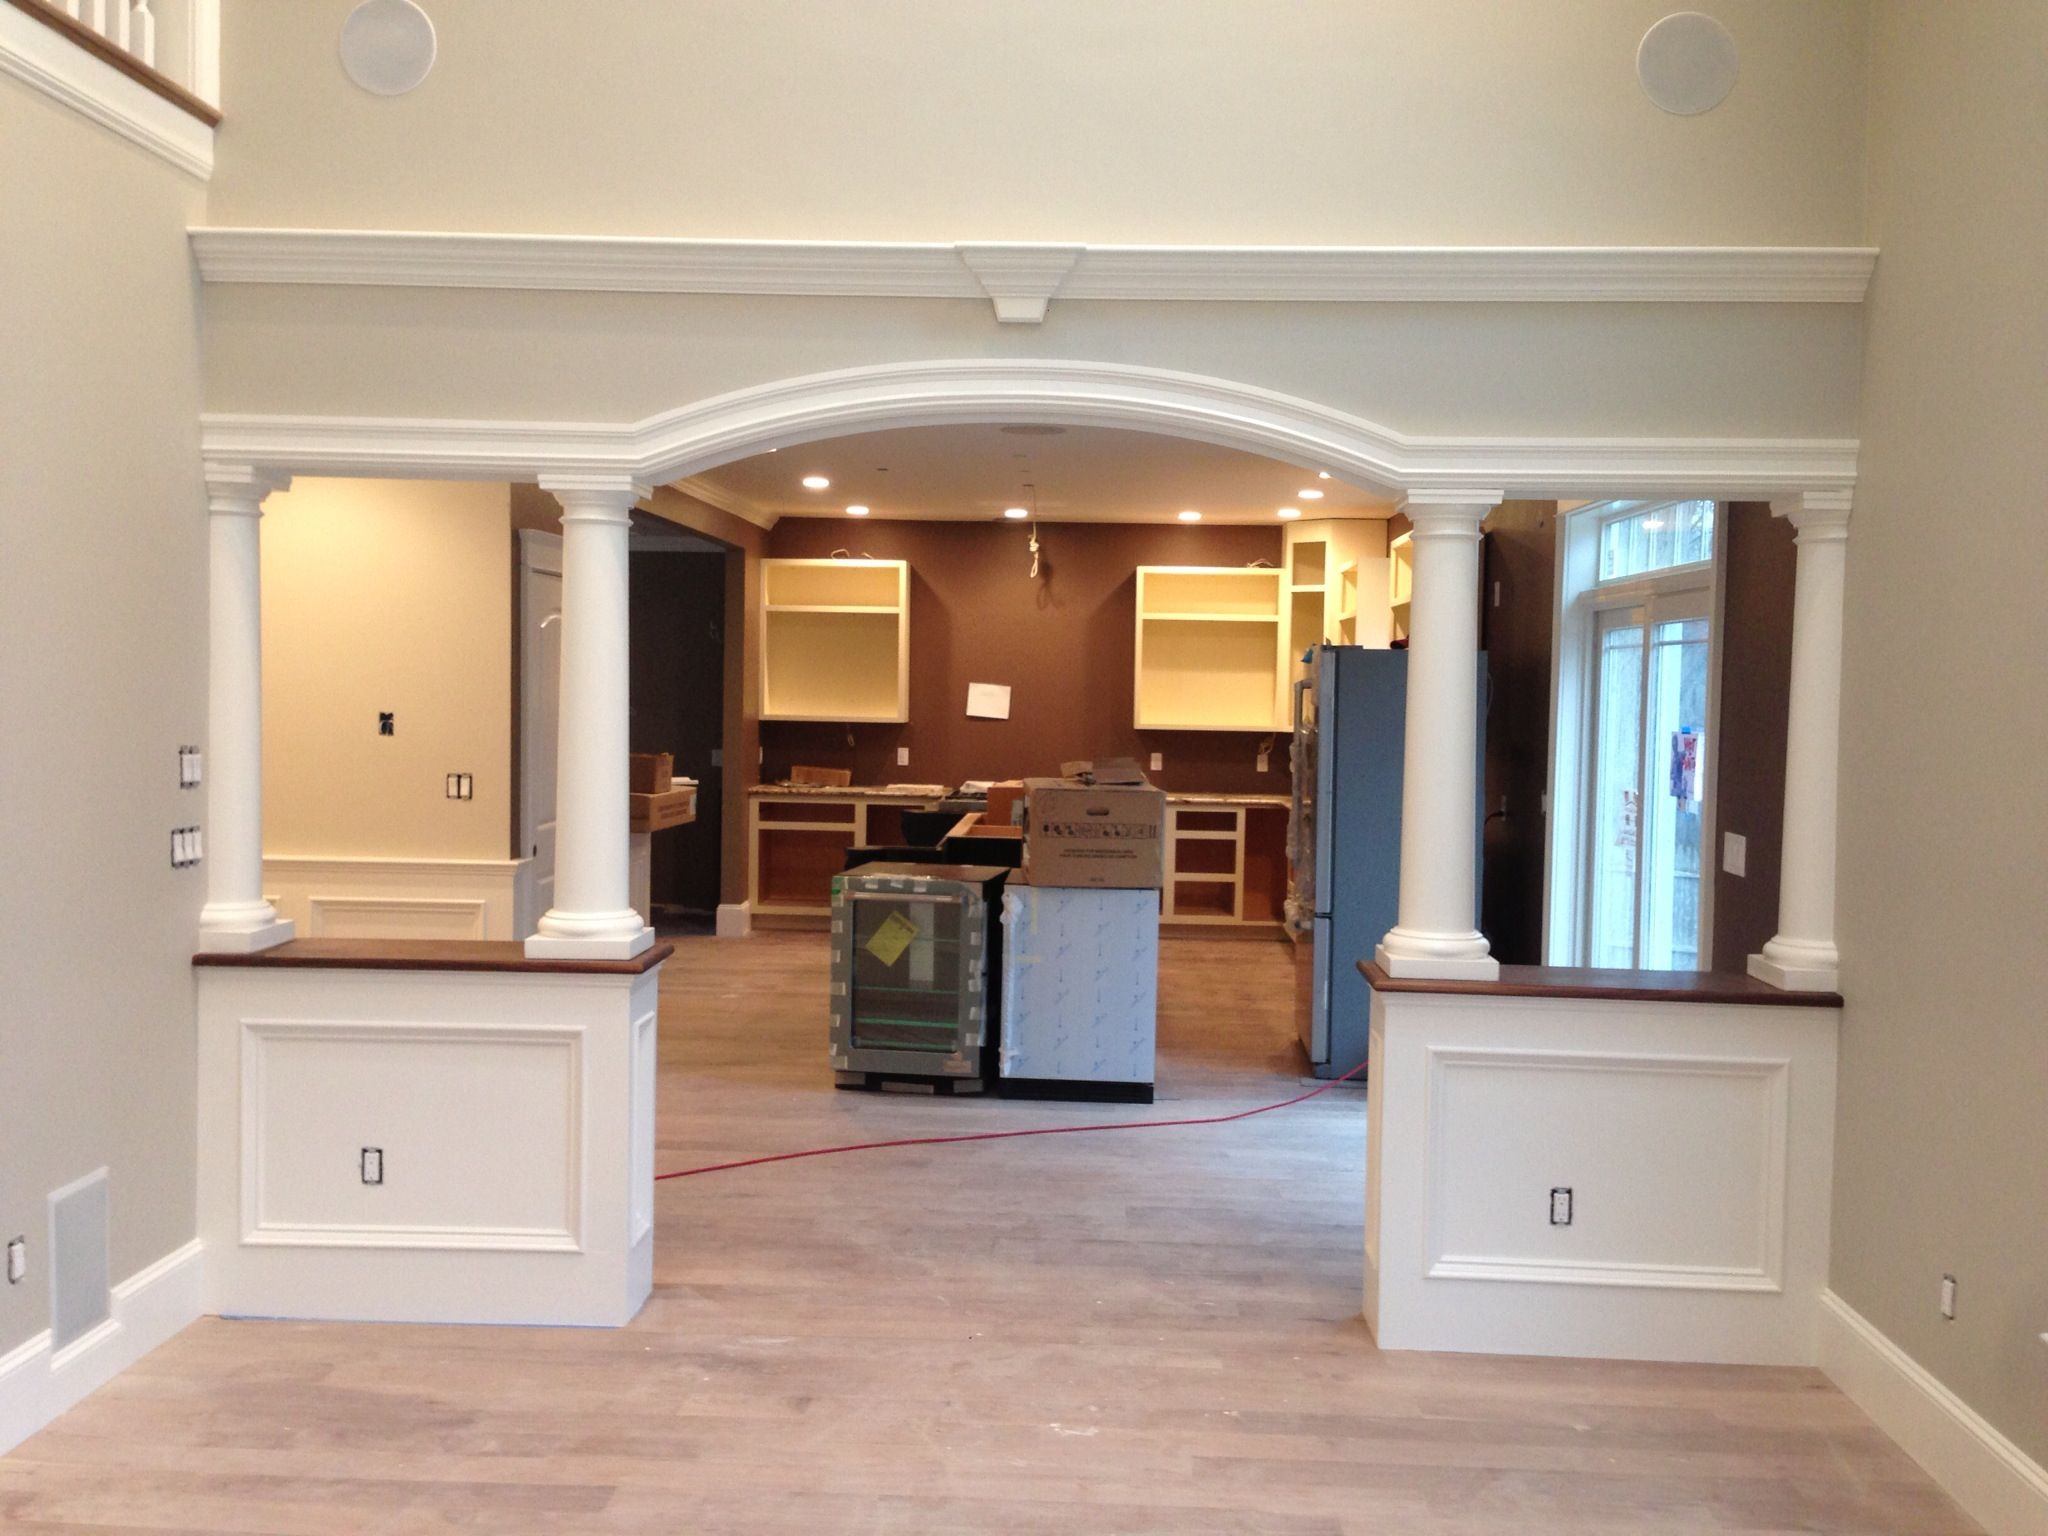 Arched opening with walnut half walls and columns